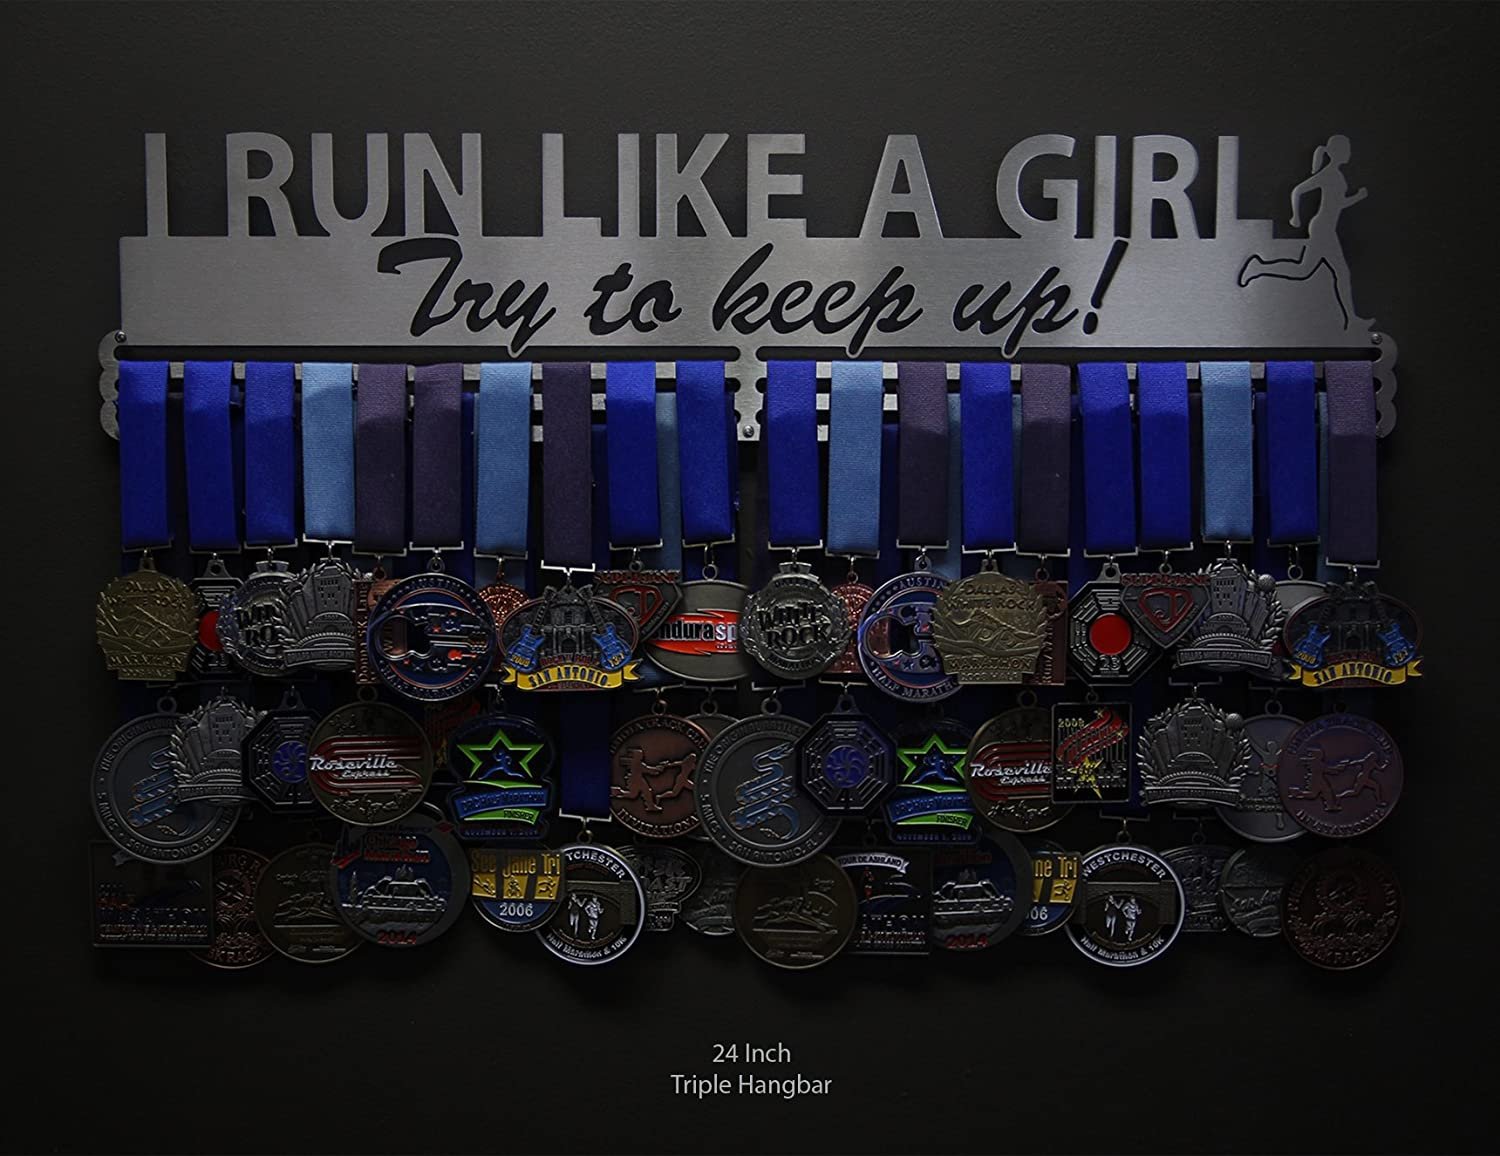 Allied Medal Hangers I Run Like A Girl Try to Keep Up 18 Wide with 3 Hang Bars - Multiple AX-AY-ABHI-102807